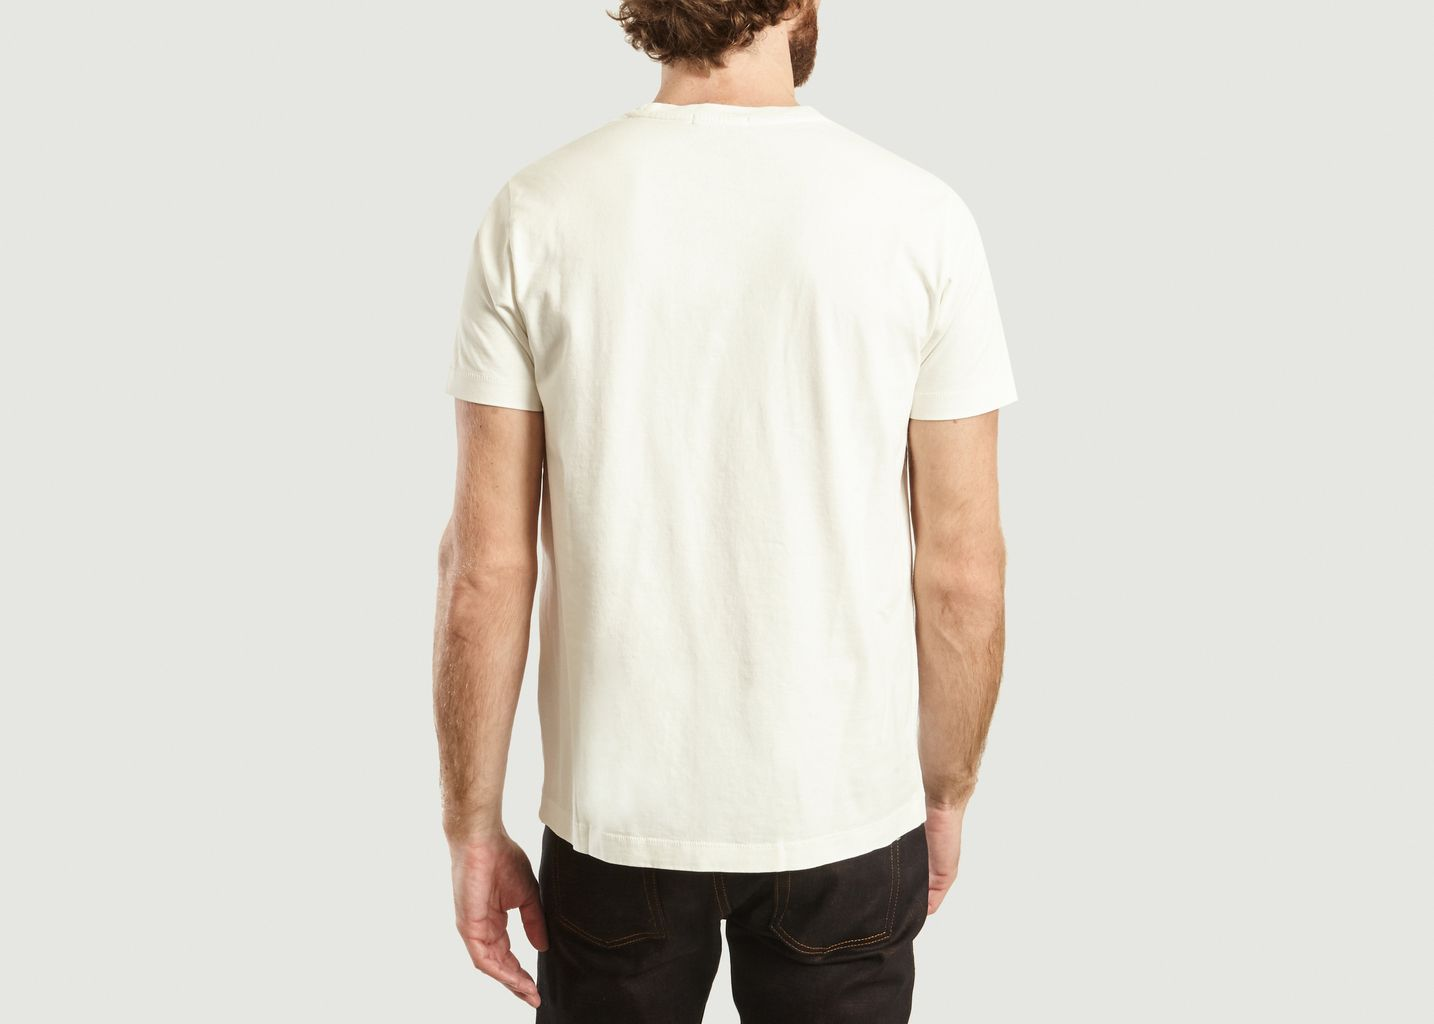 T-Shirt Roy No No No ! - Nudie Jeans